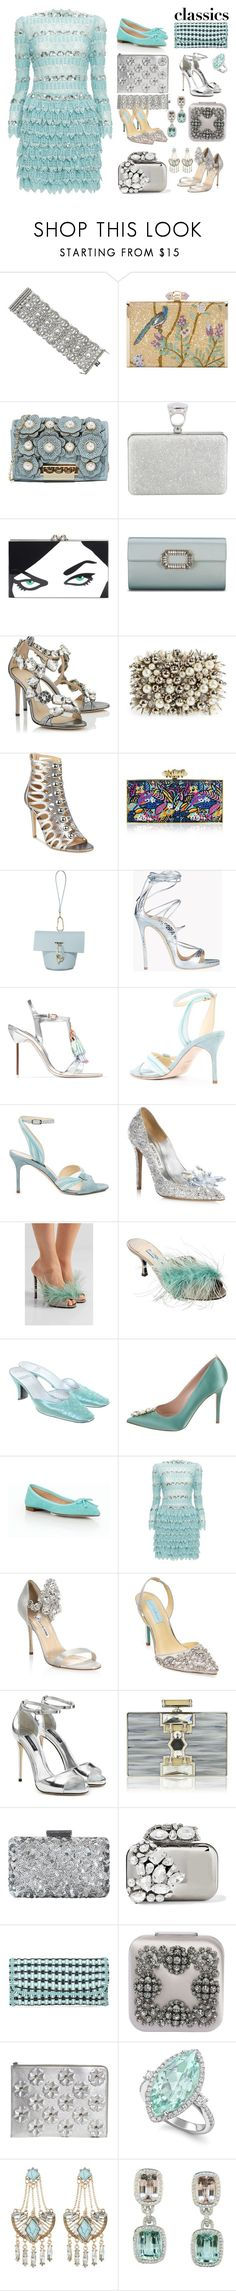 """Tried and True: Wardrobe Staples"" by yours-styling-best-friend ❤ liked on Polyvore featuring Judith Leiber, ZAC Zac Posen, Tom Ford, Charlotte Olympia, Natasha, GUESS, Dsquared2, Sophia Webster, Sarah Flint and Jimmy Choo"